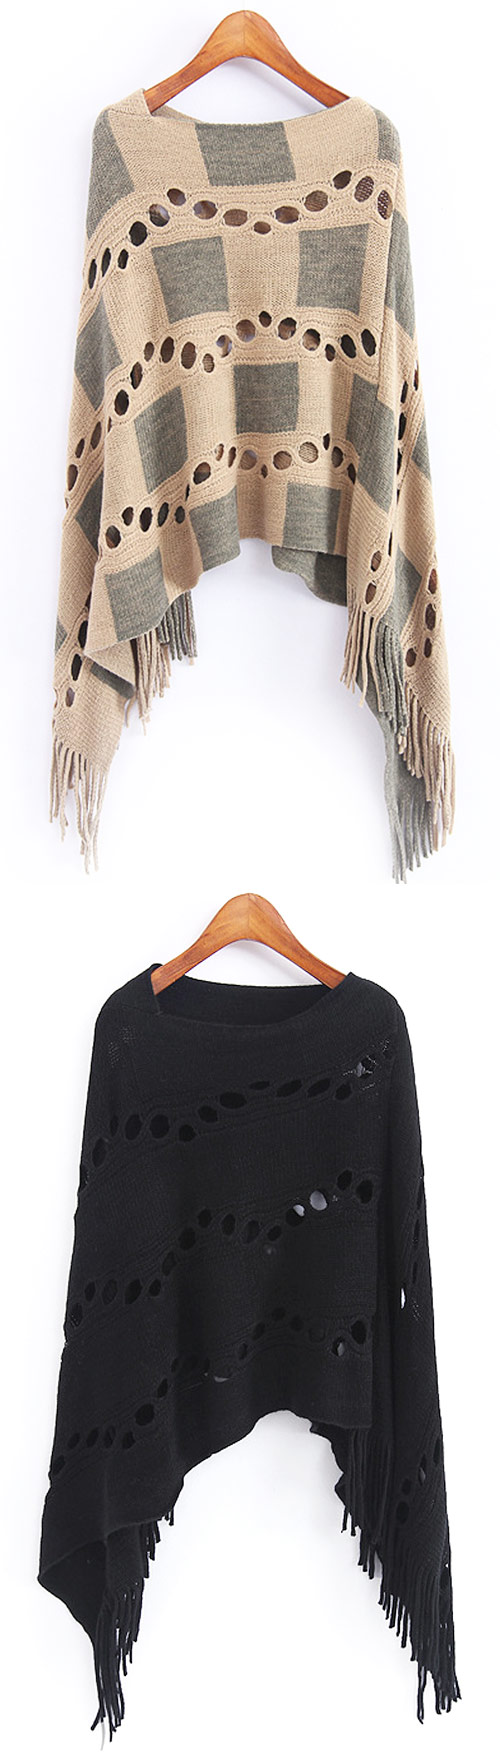 Your must-have chic scarf outfit is here! Free shipping to get it Now! It is detailed with tassel hem&hollow design! So warm&sassy at Cupshe.com